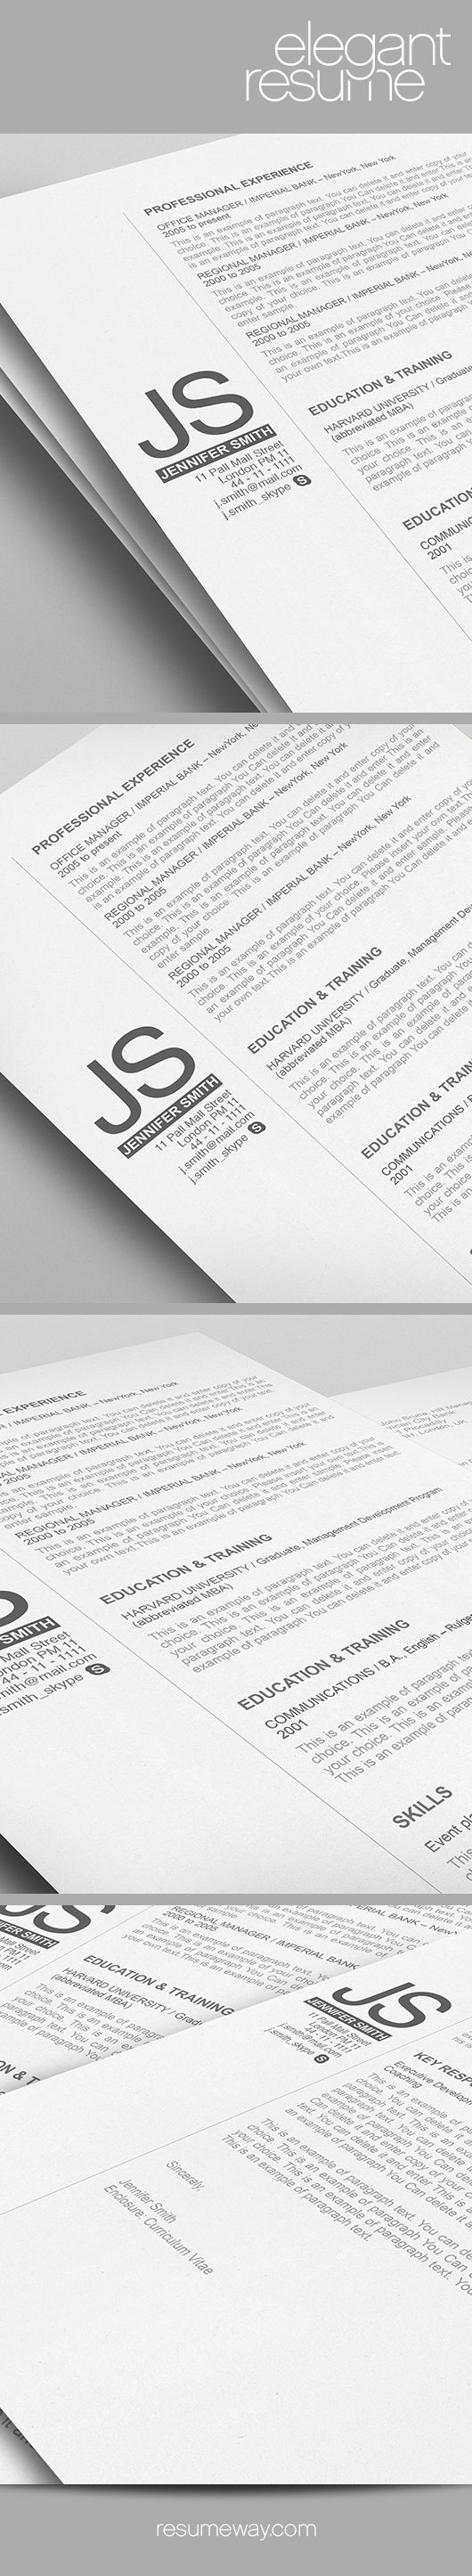 Resume Template 110540   Pinterest   Resume cover letter template     Elegant Resume Template   110540   Premium line of Resume   Cover Letter  Templates  Easy edit with MS Word  Apple Pages   Resume  Resumes   ResumeWay